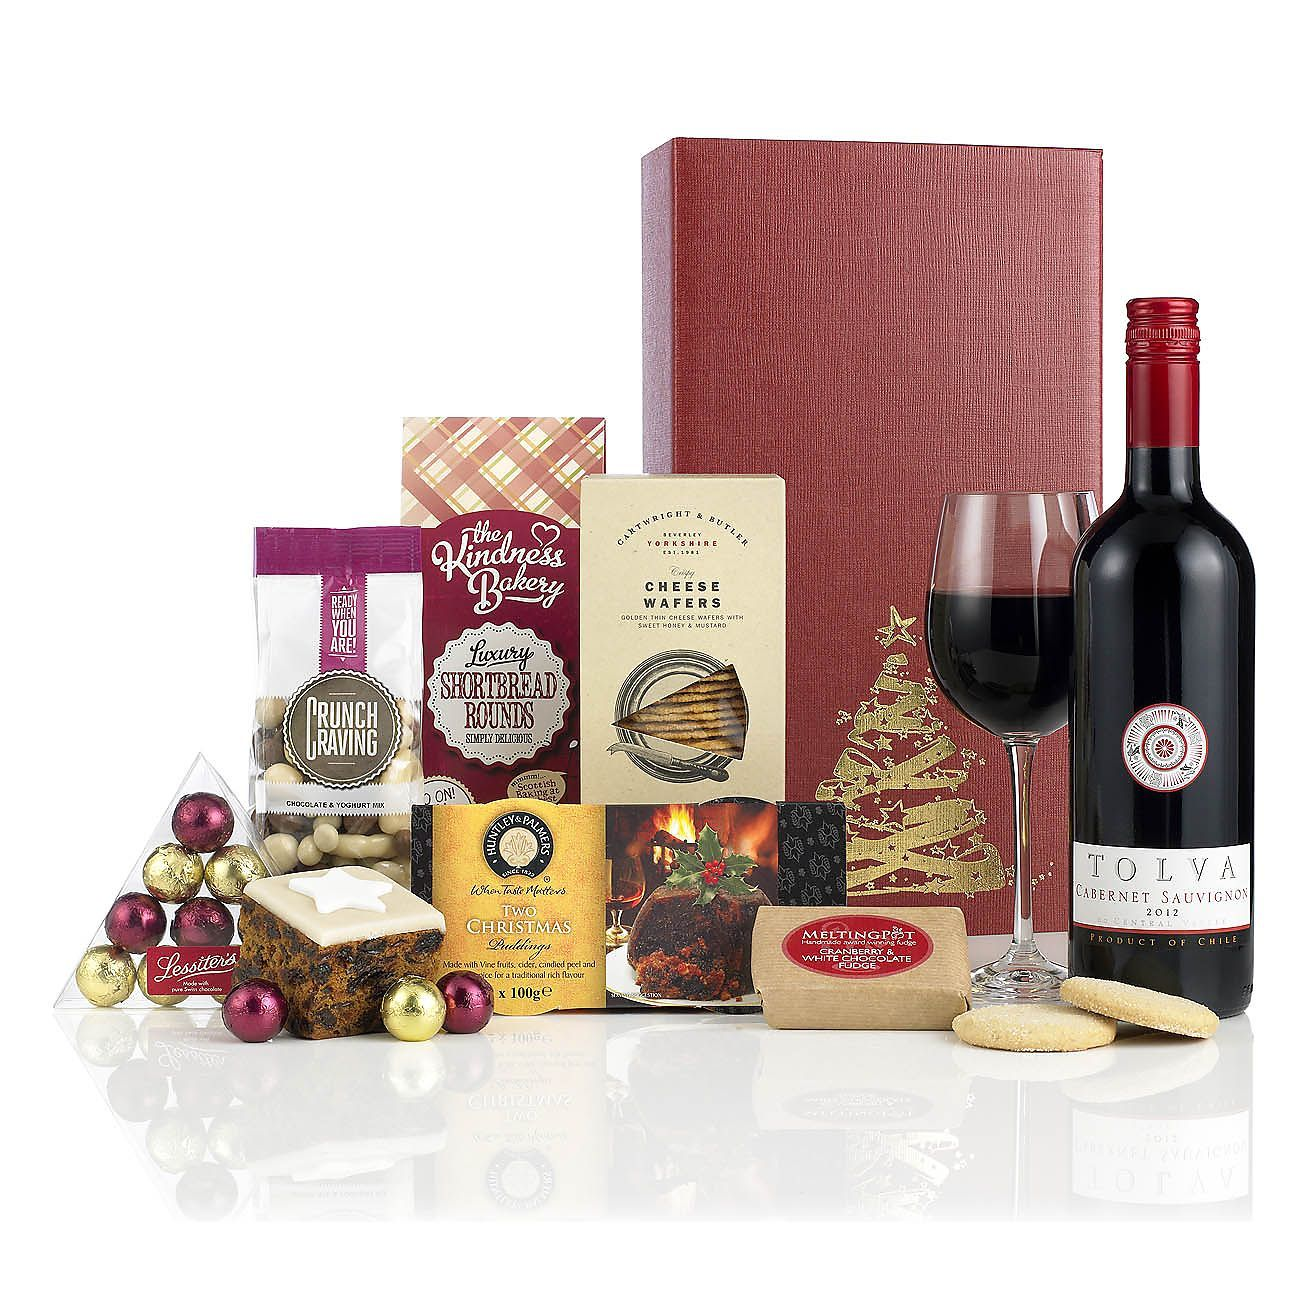 34 99 The Fir Tree Gift Hampers Client Gifts Christmas Luxury Hampers